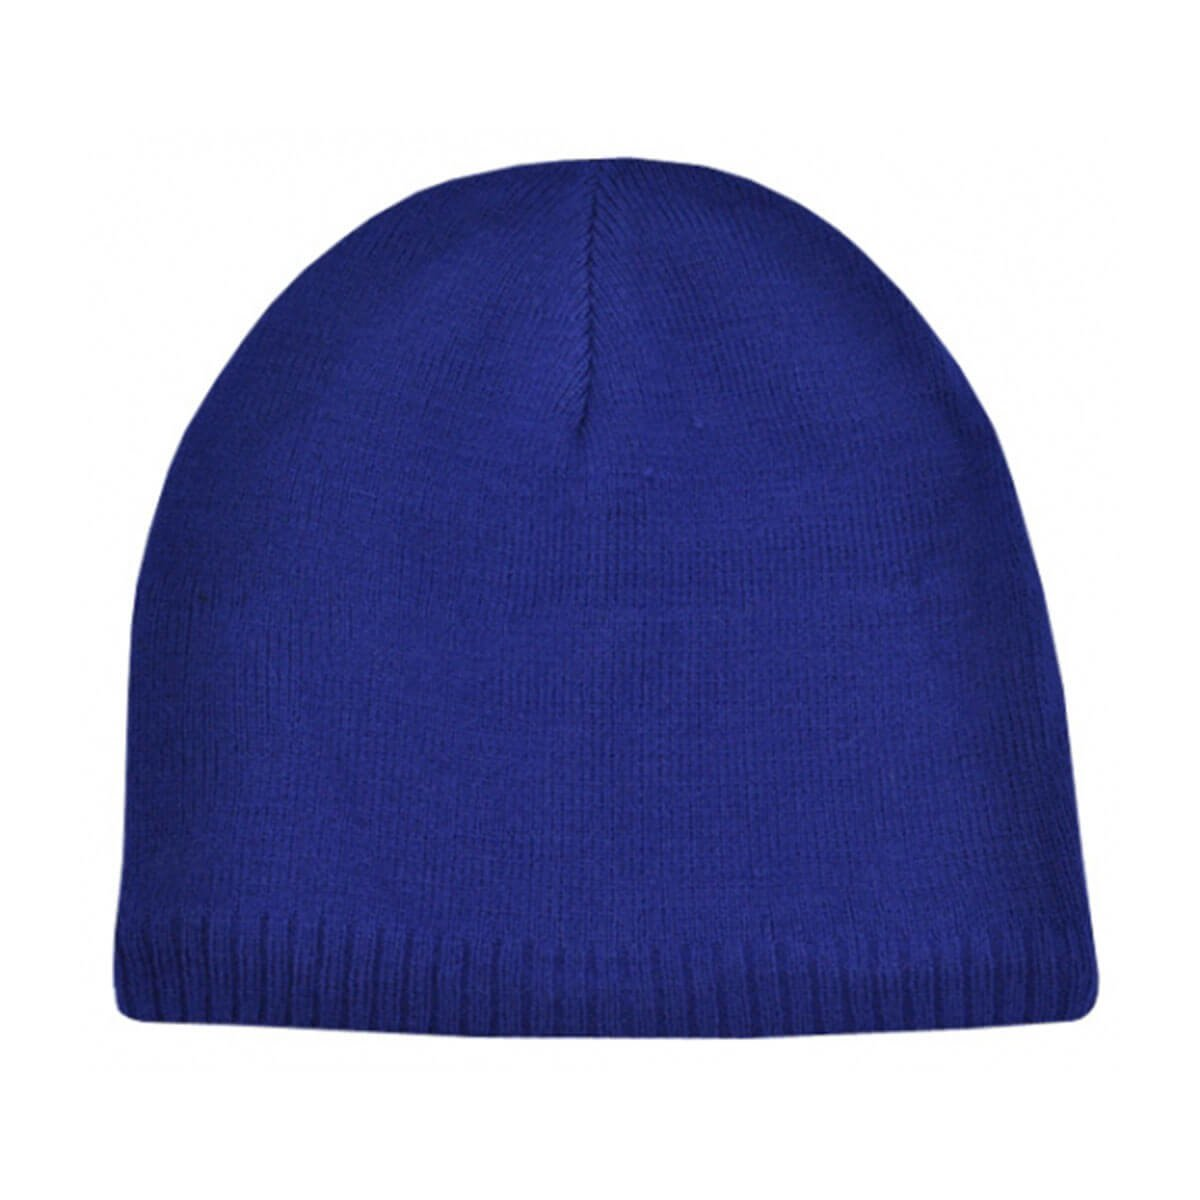 Acrylic/Polar Fleece Beanie-Royal